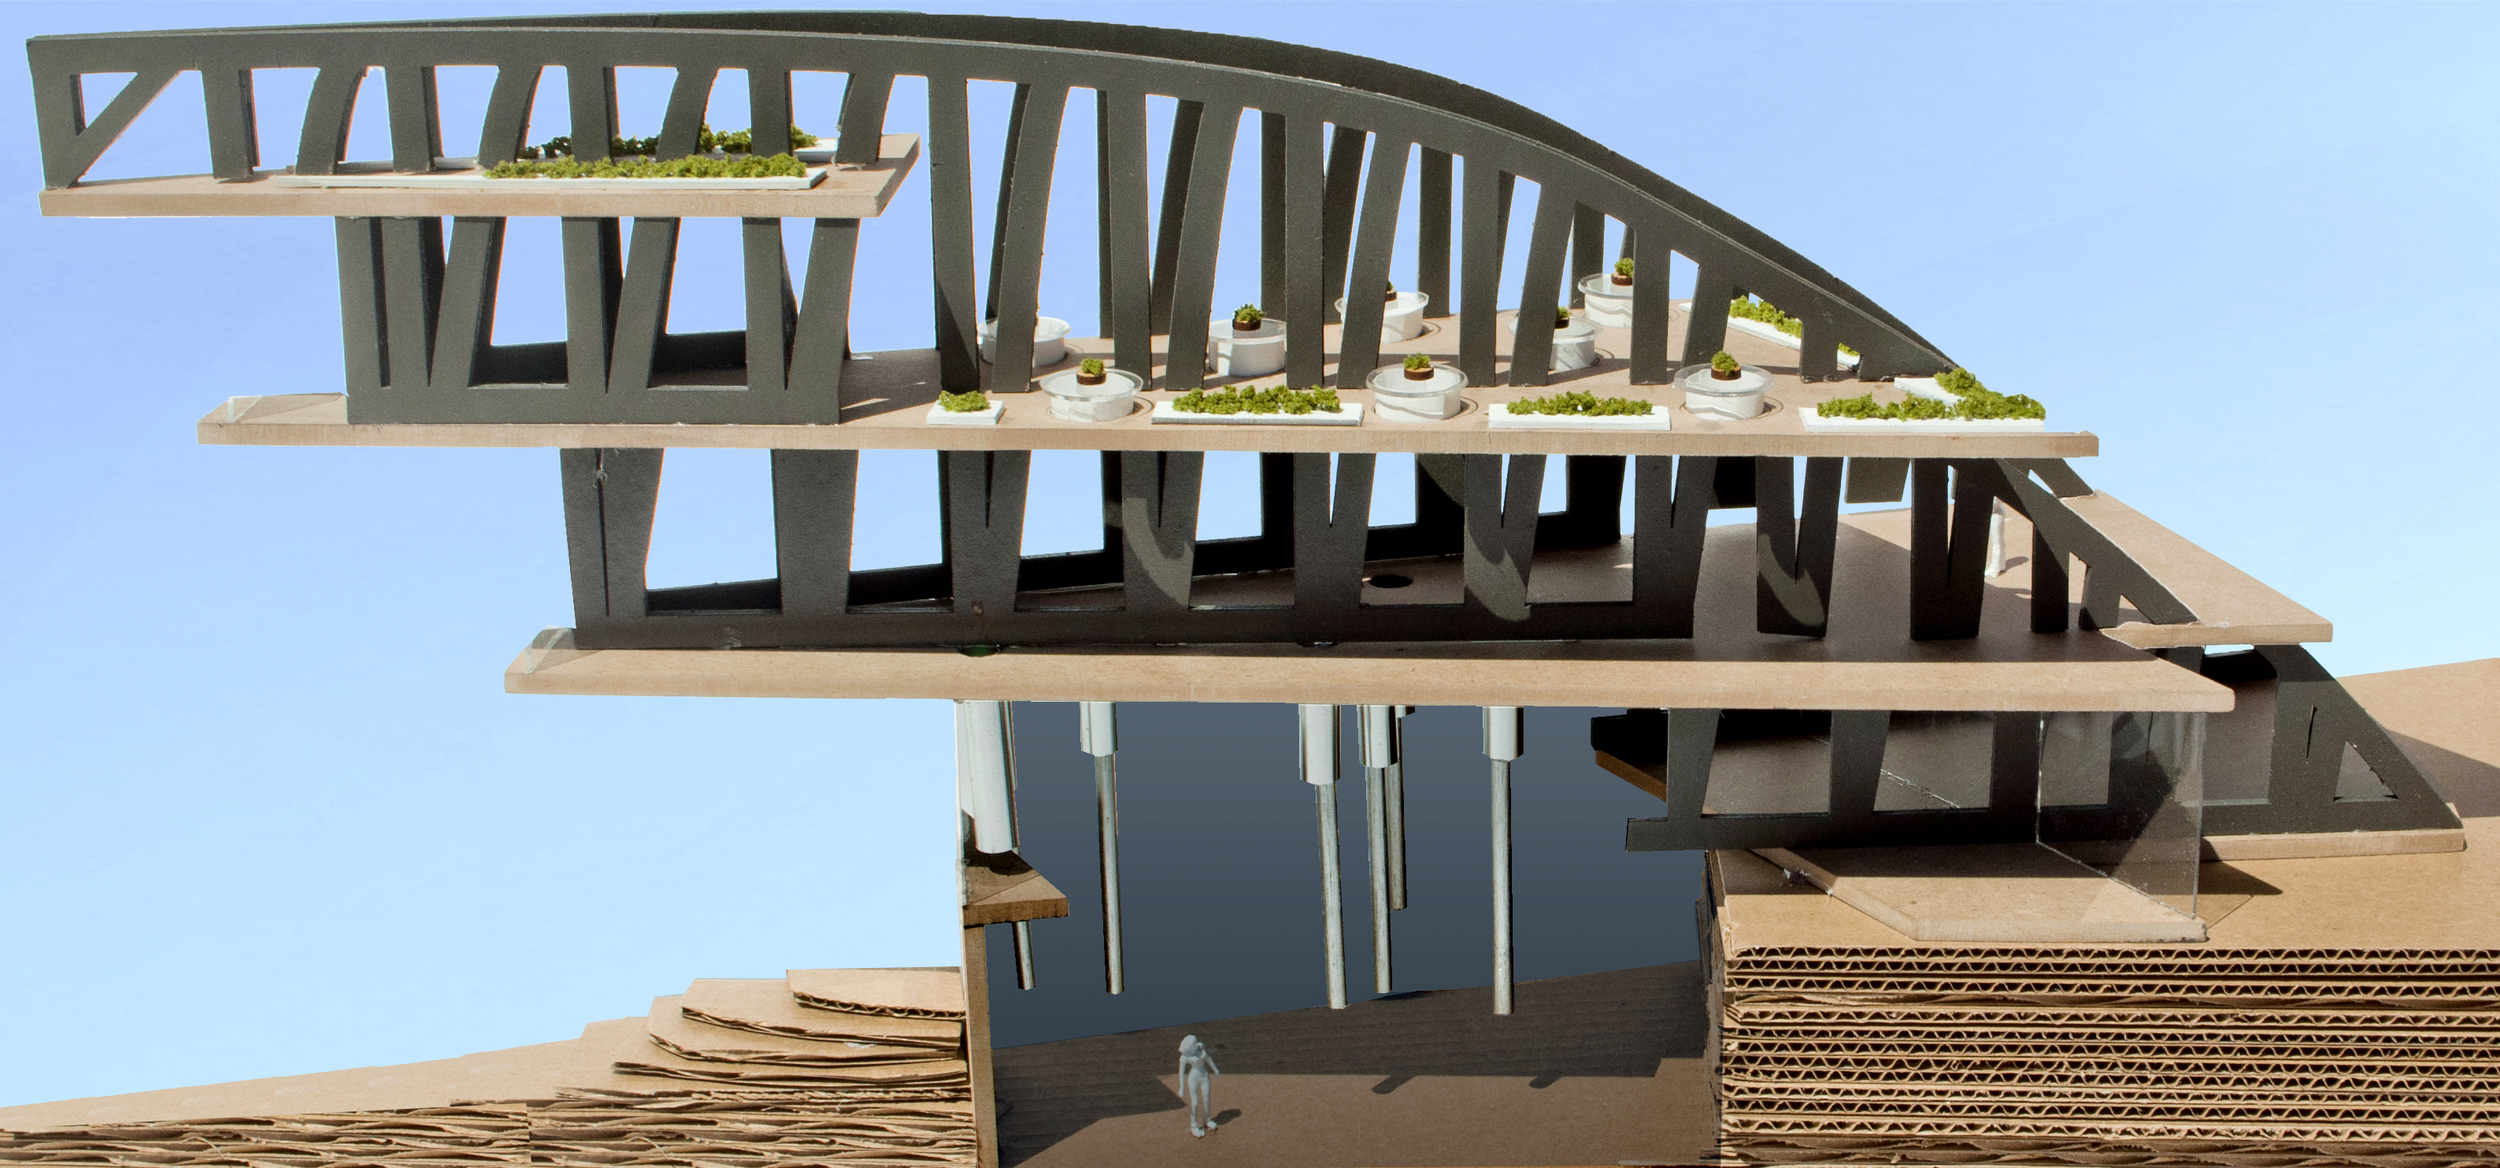 Final section model through dining structure, highlighting the areas of inhabitable space and food processing.